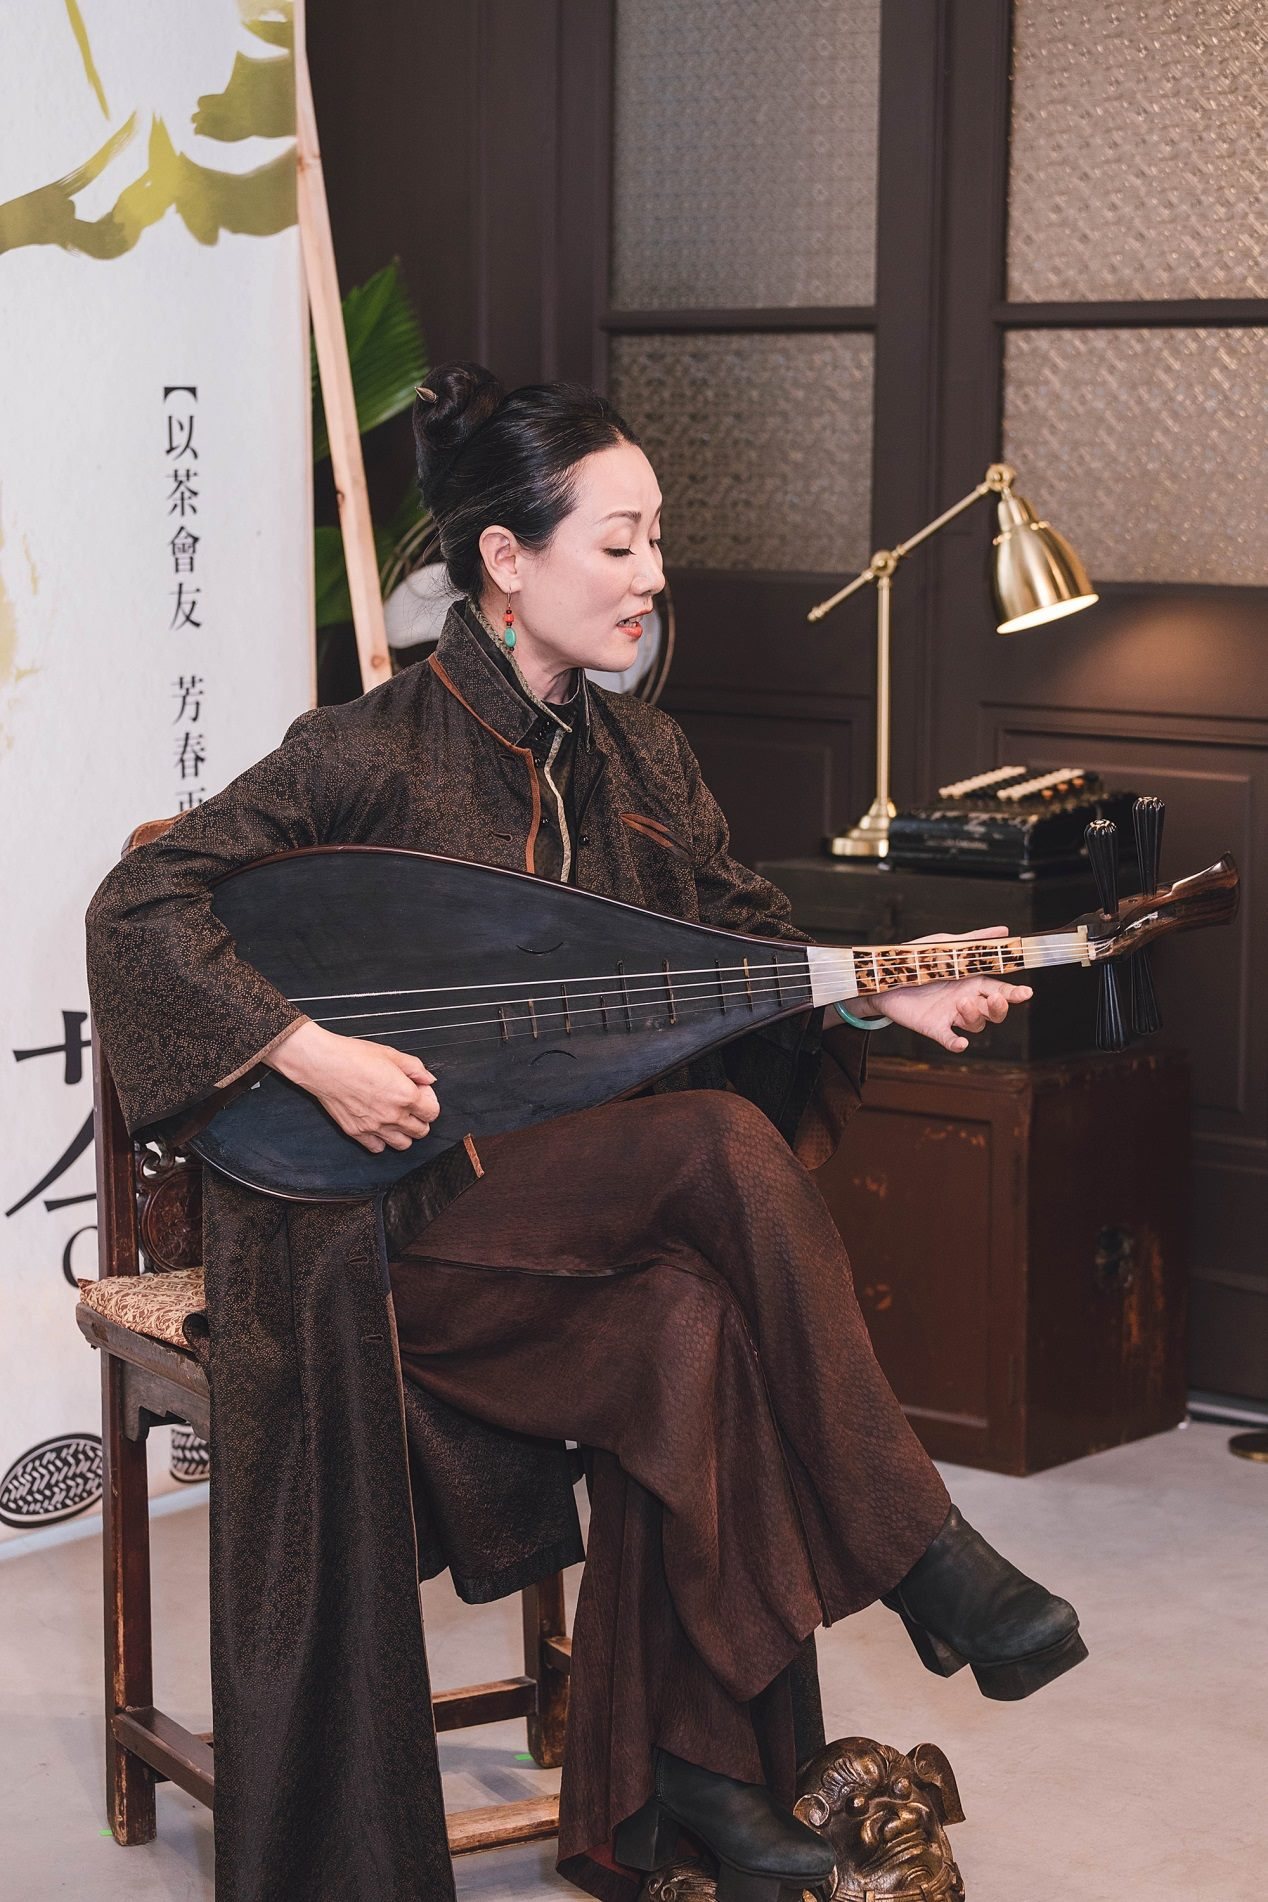 Well-known Nanguan (南管) musician Wang Xinxin performs on May 31 at a reopening and tea-sealing ceremony in the Shin Hong Choon Tea Workshop.